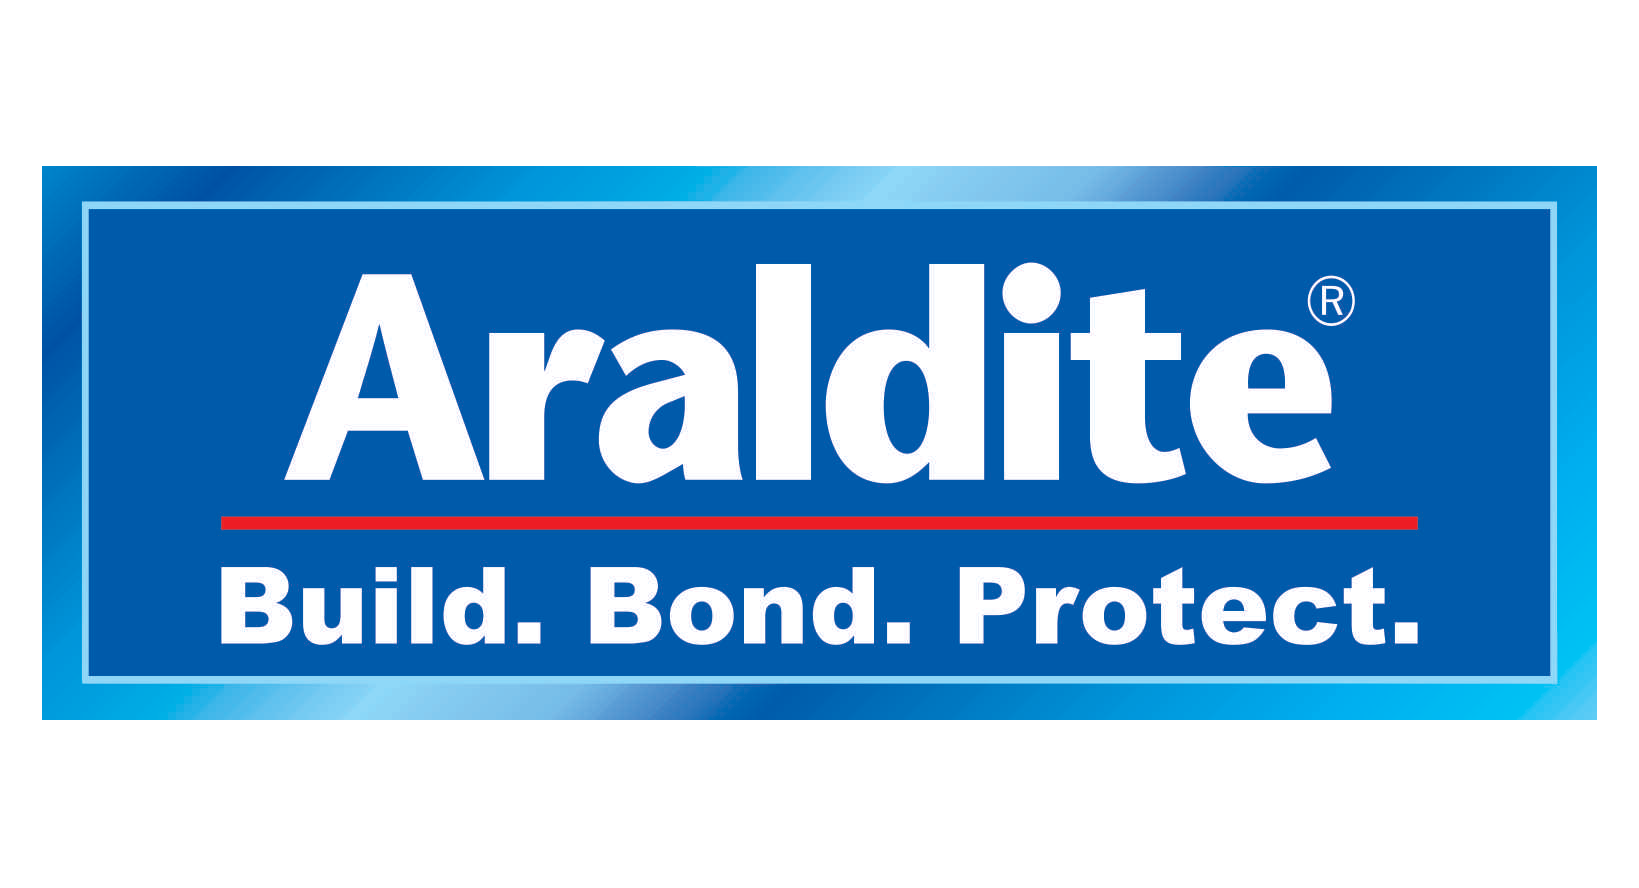 Local dealer for construction and insulation matterials by araldite